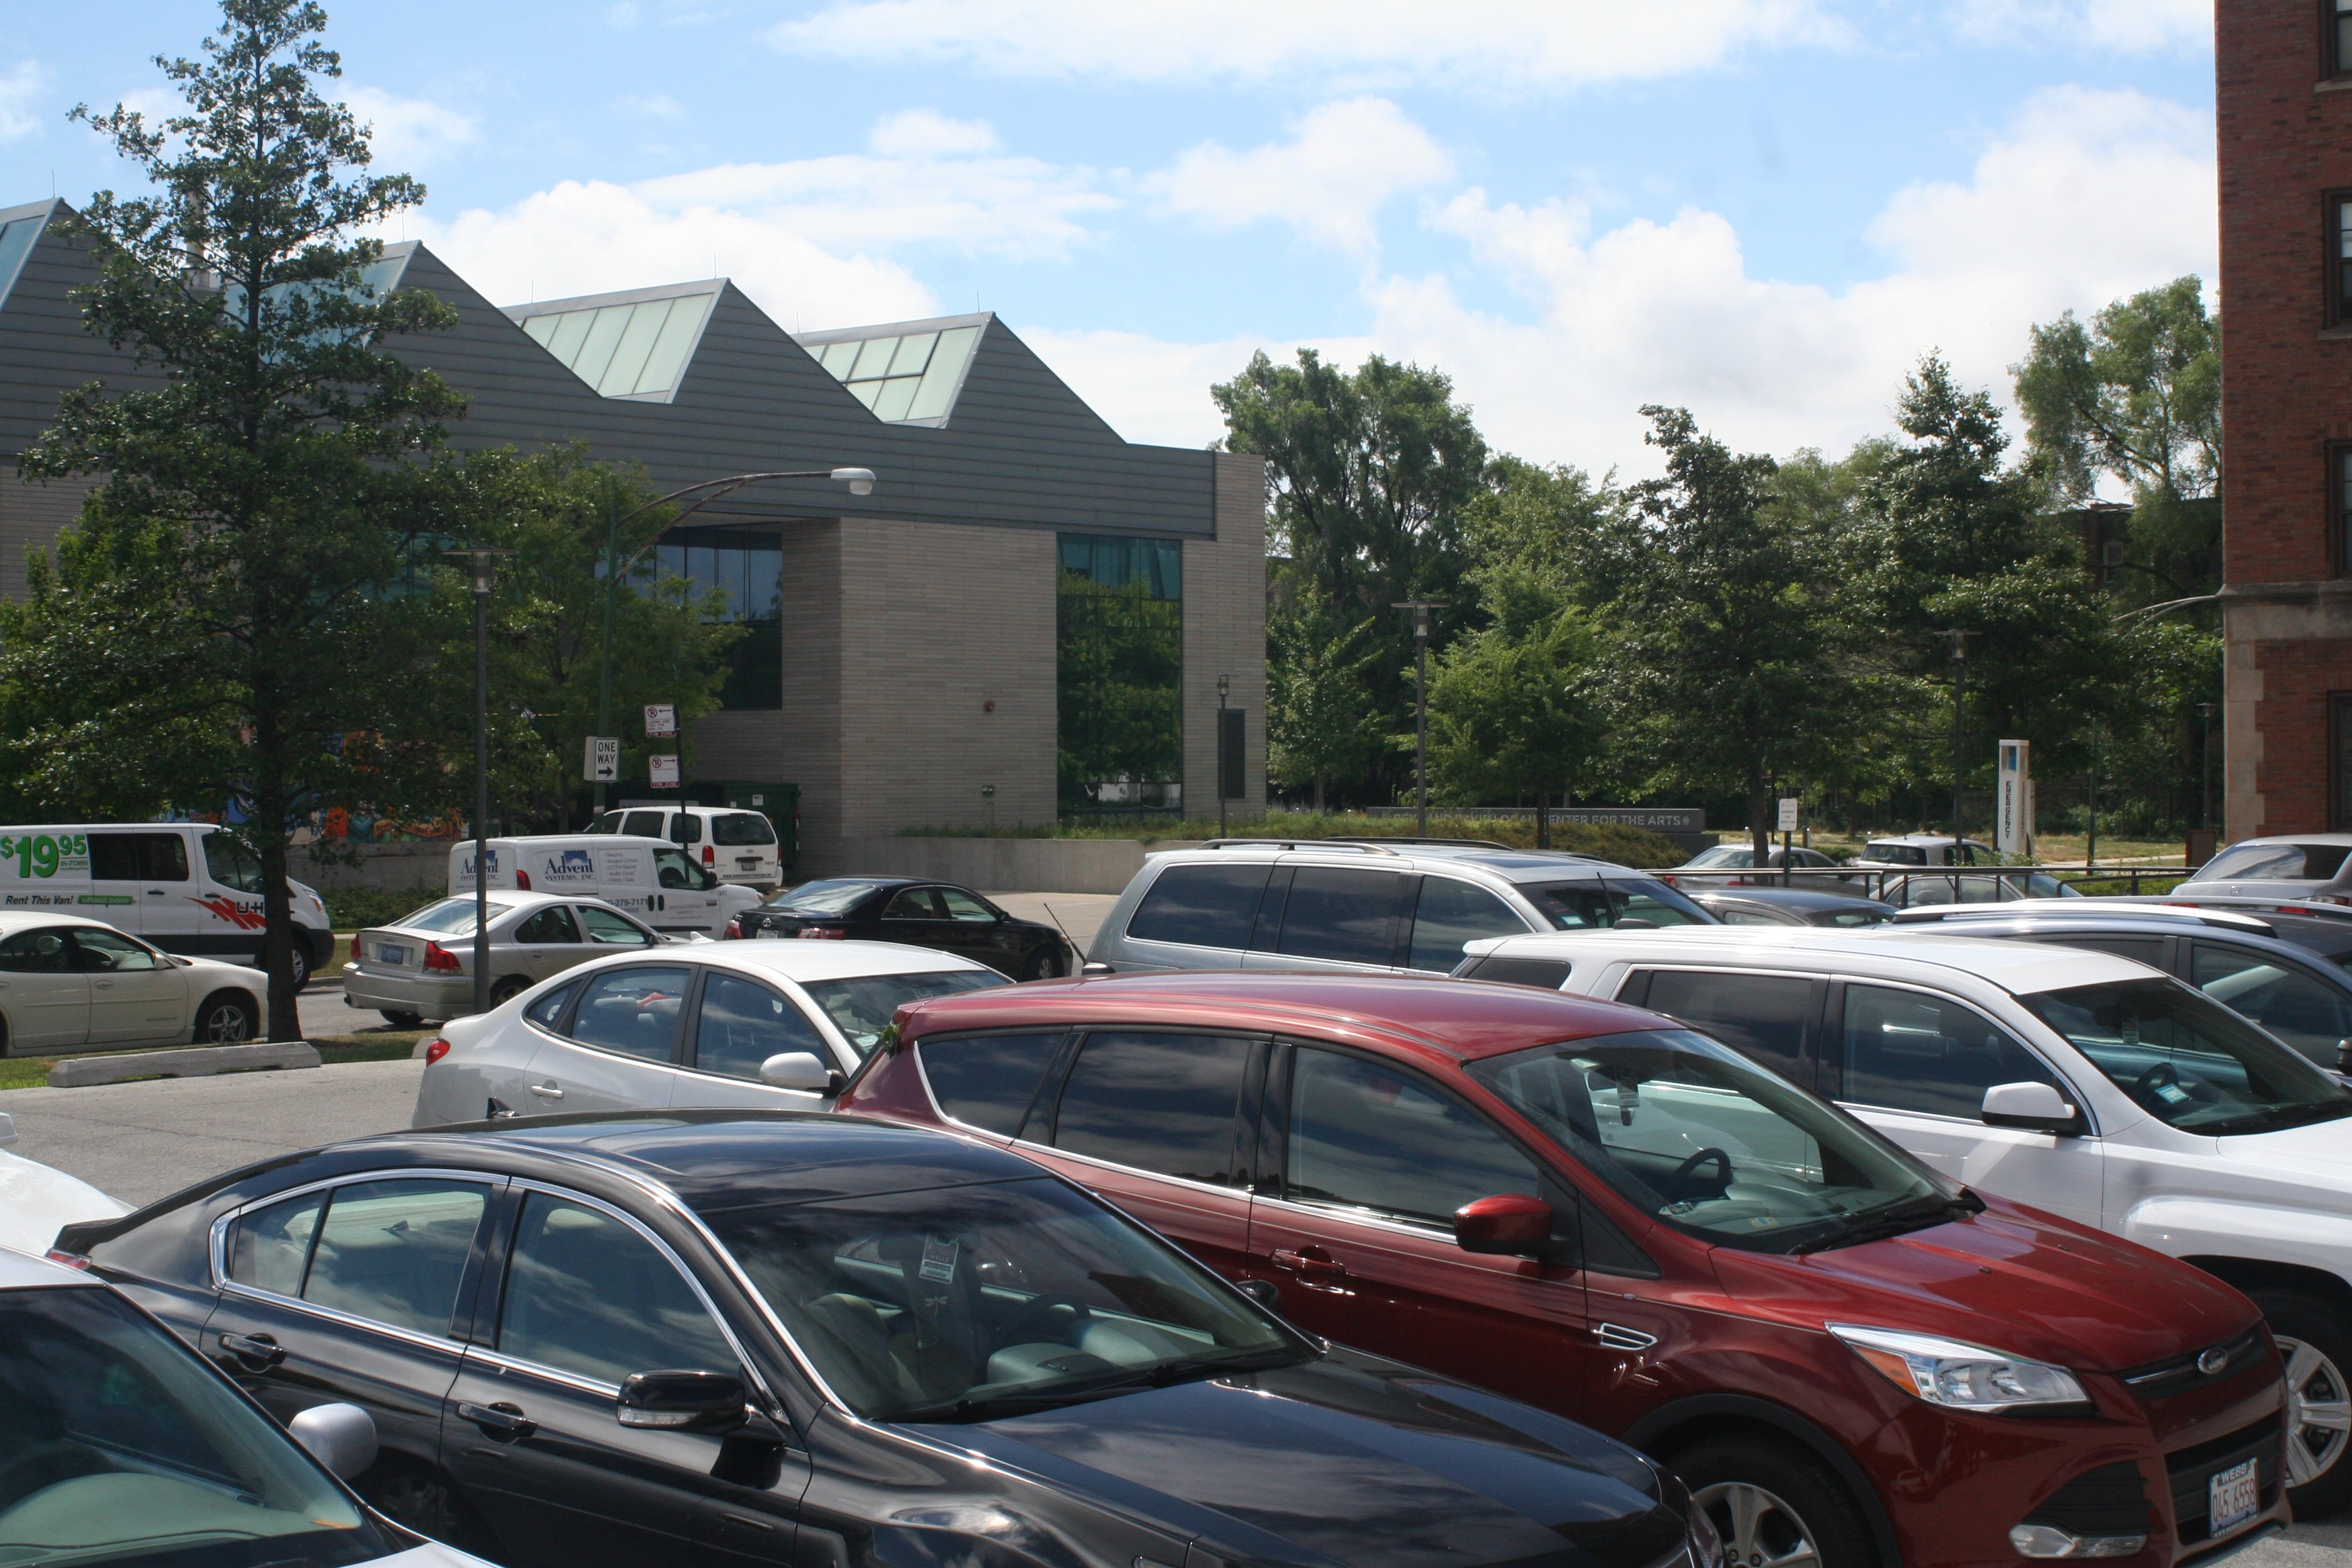 Cars parked in the Wells parking lot on south campus.